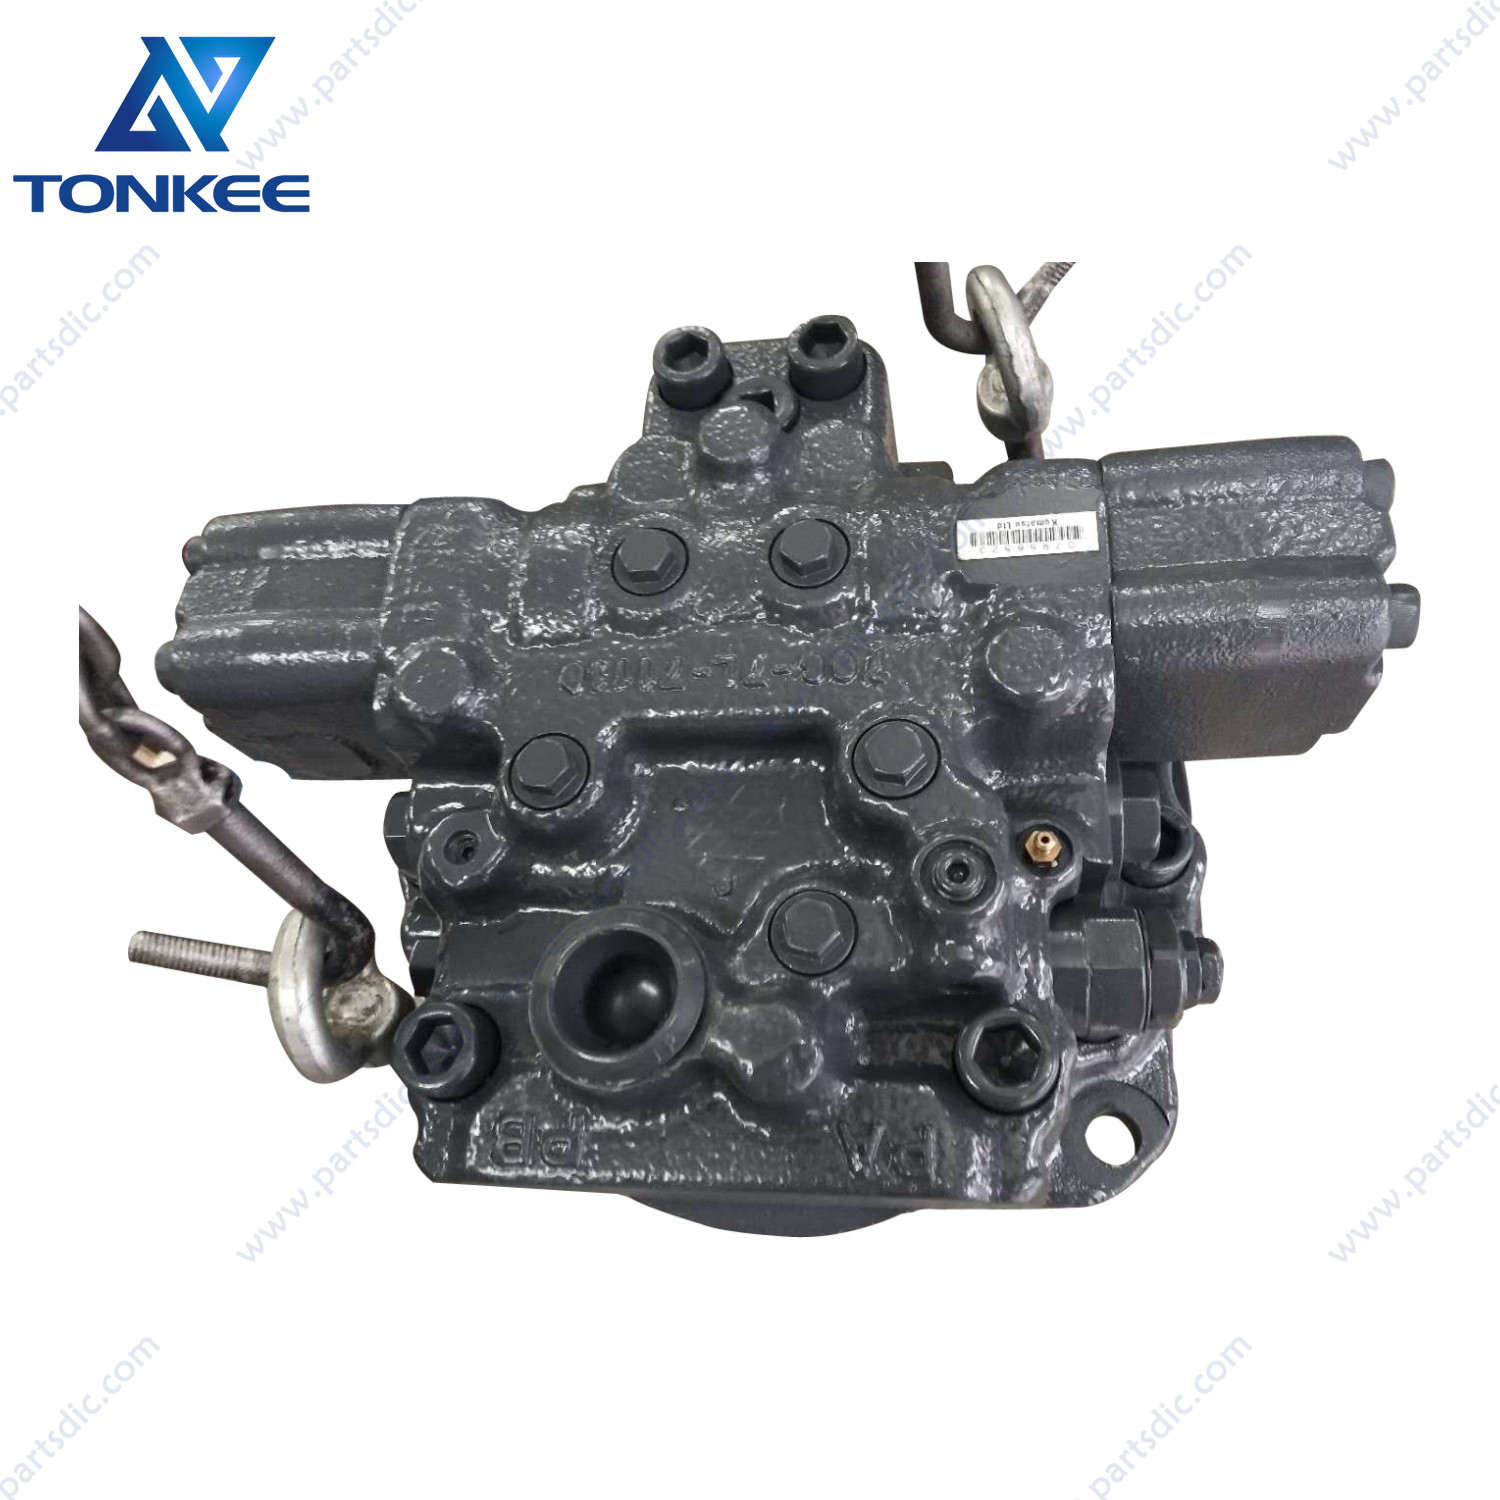 NEW 706-7L-01110travel motor assy excavatorPC2000-8hydraulic travel motor without final drivefor KOMATSU excavation